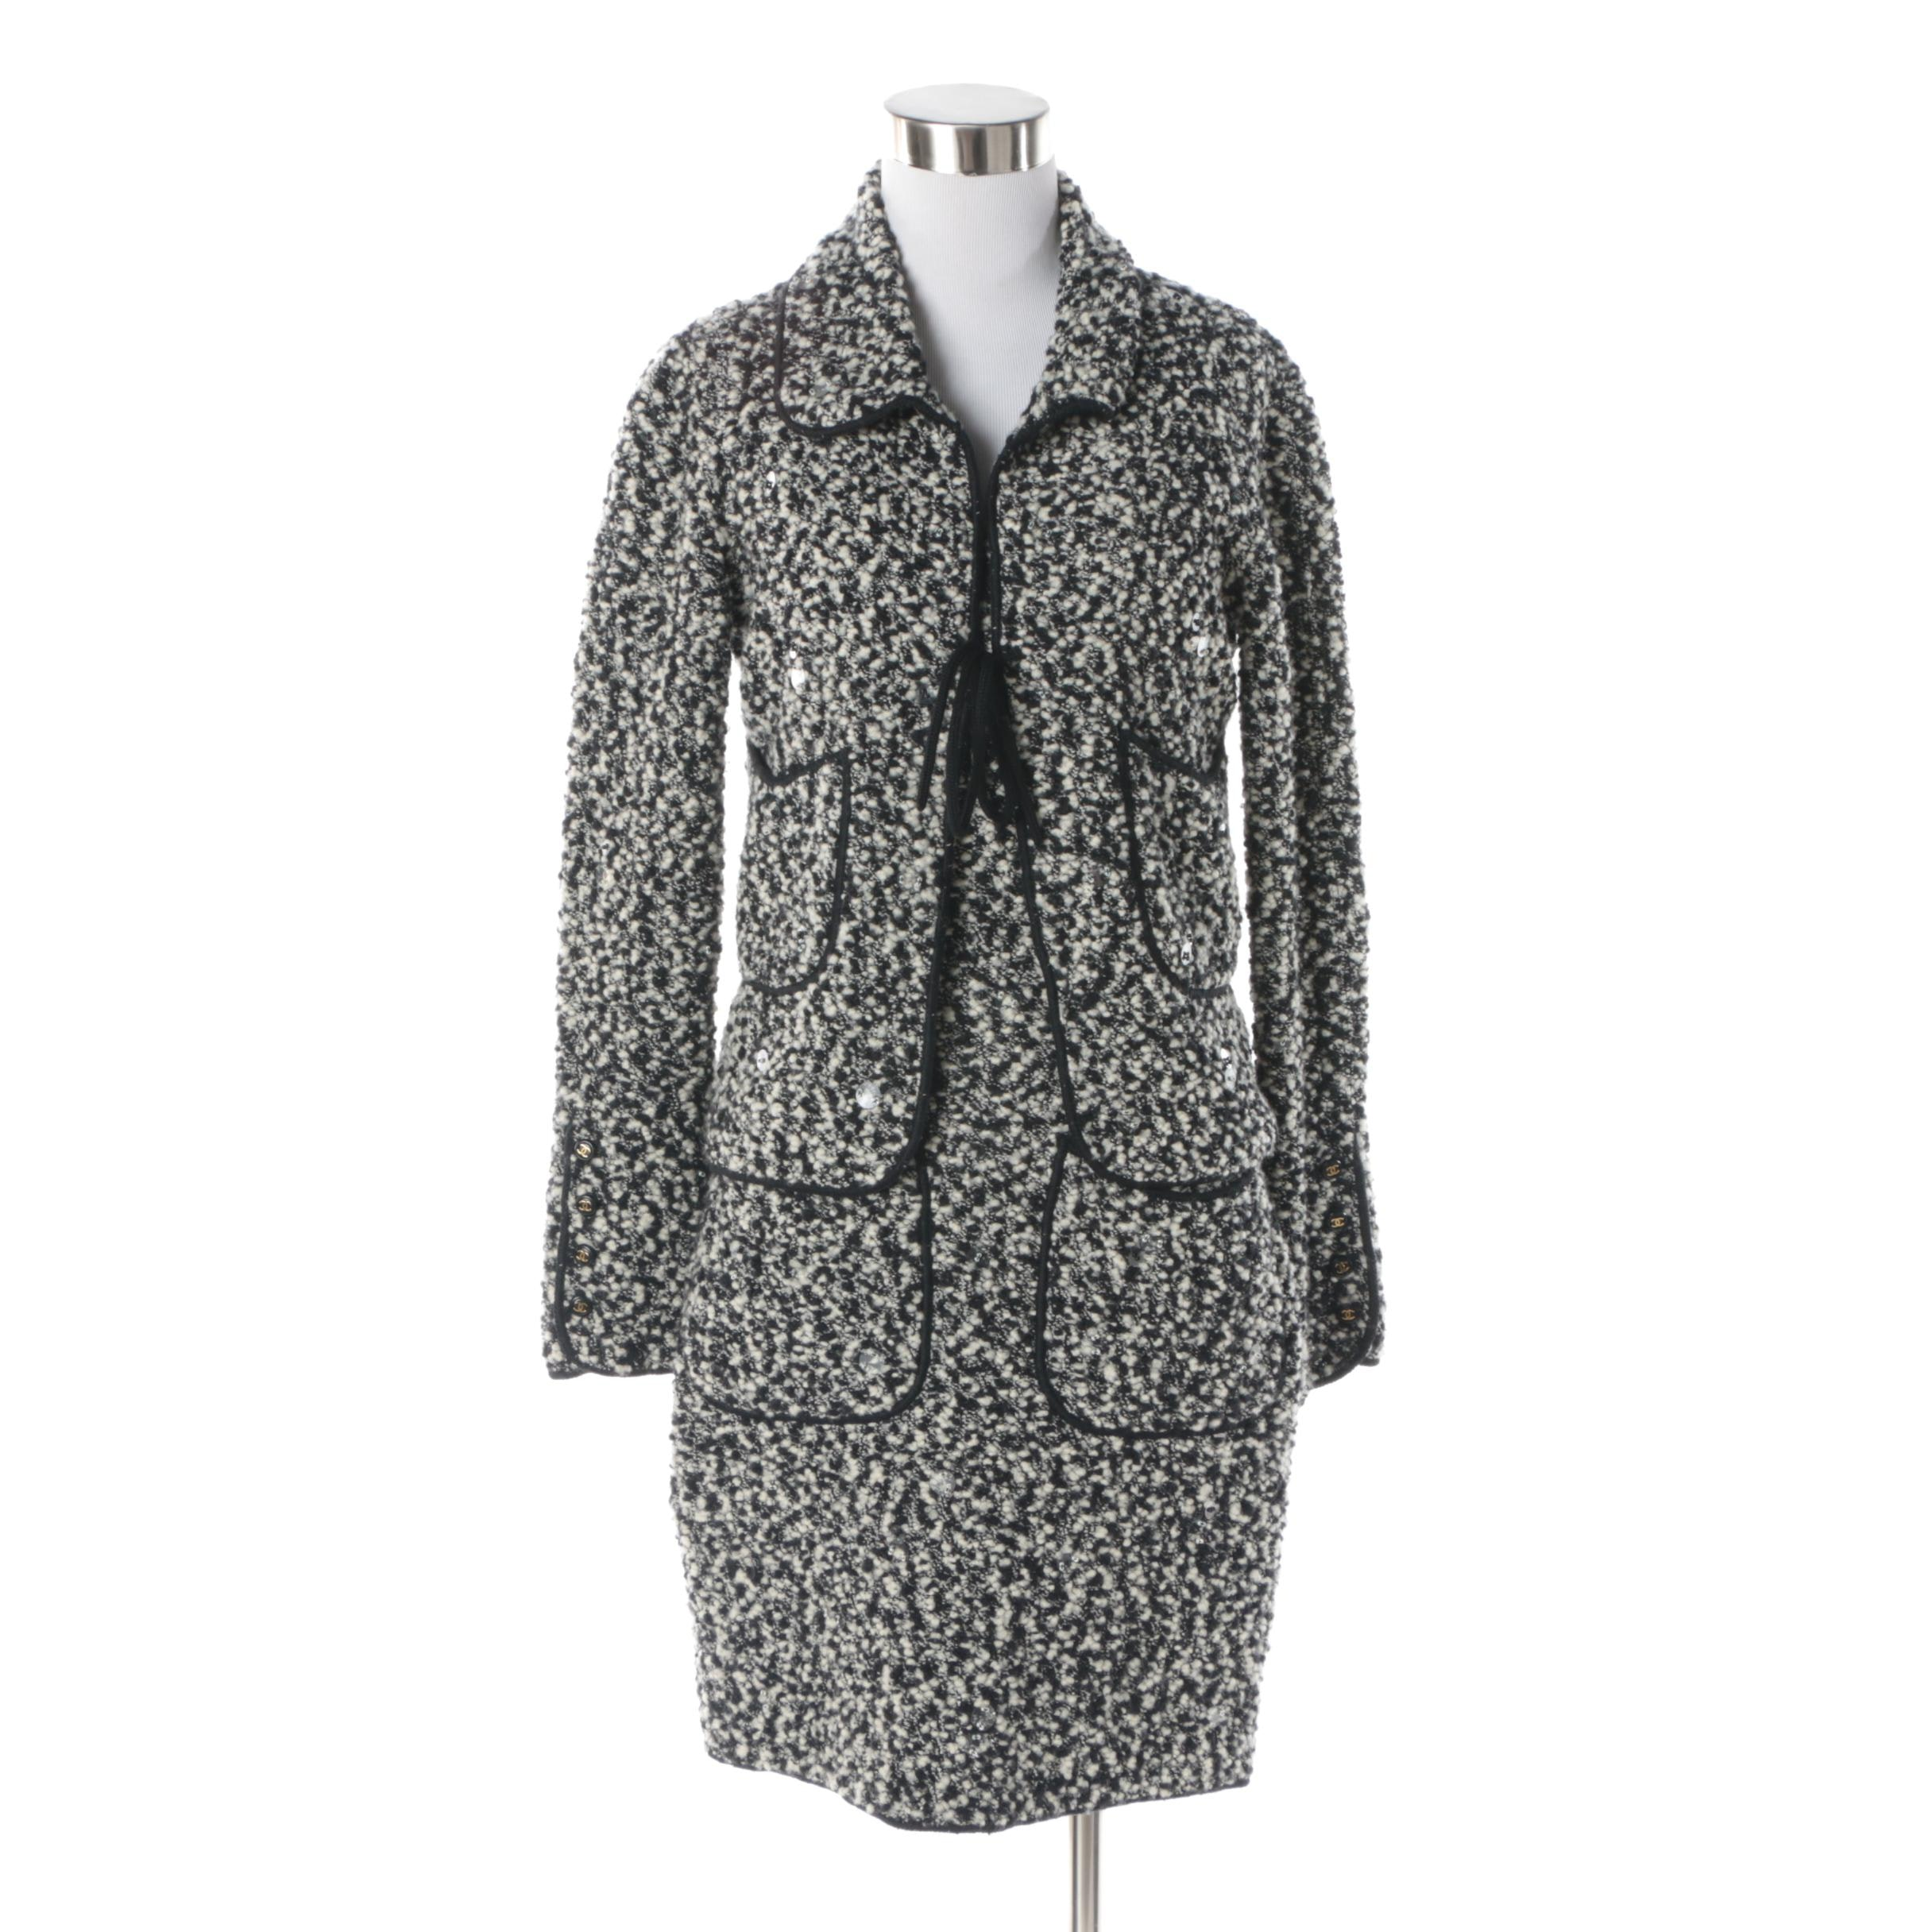 Chanel Black and White Bouclé Wool Dress Suit with Sequin Accents